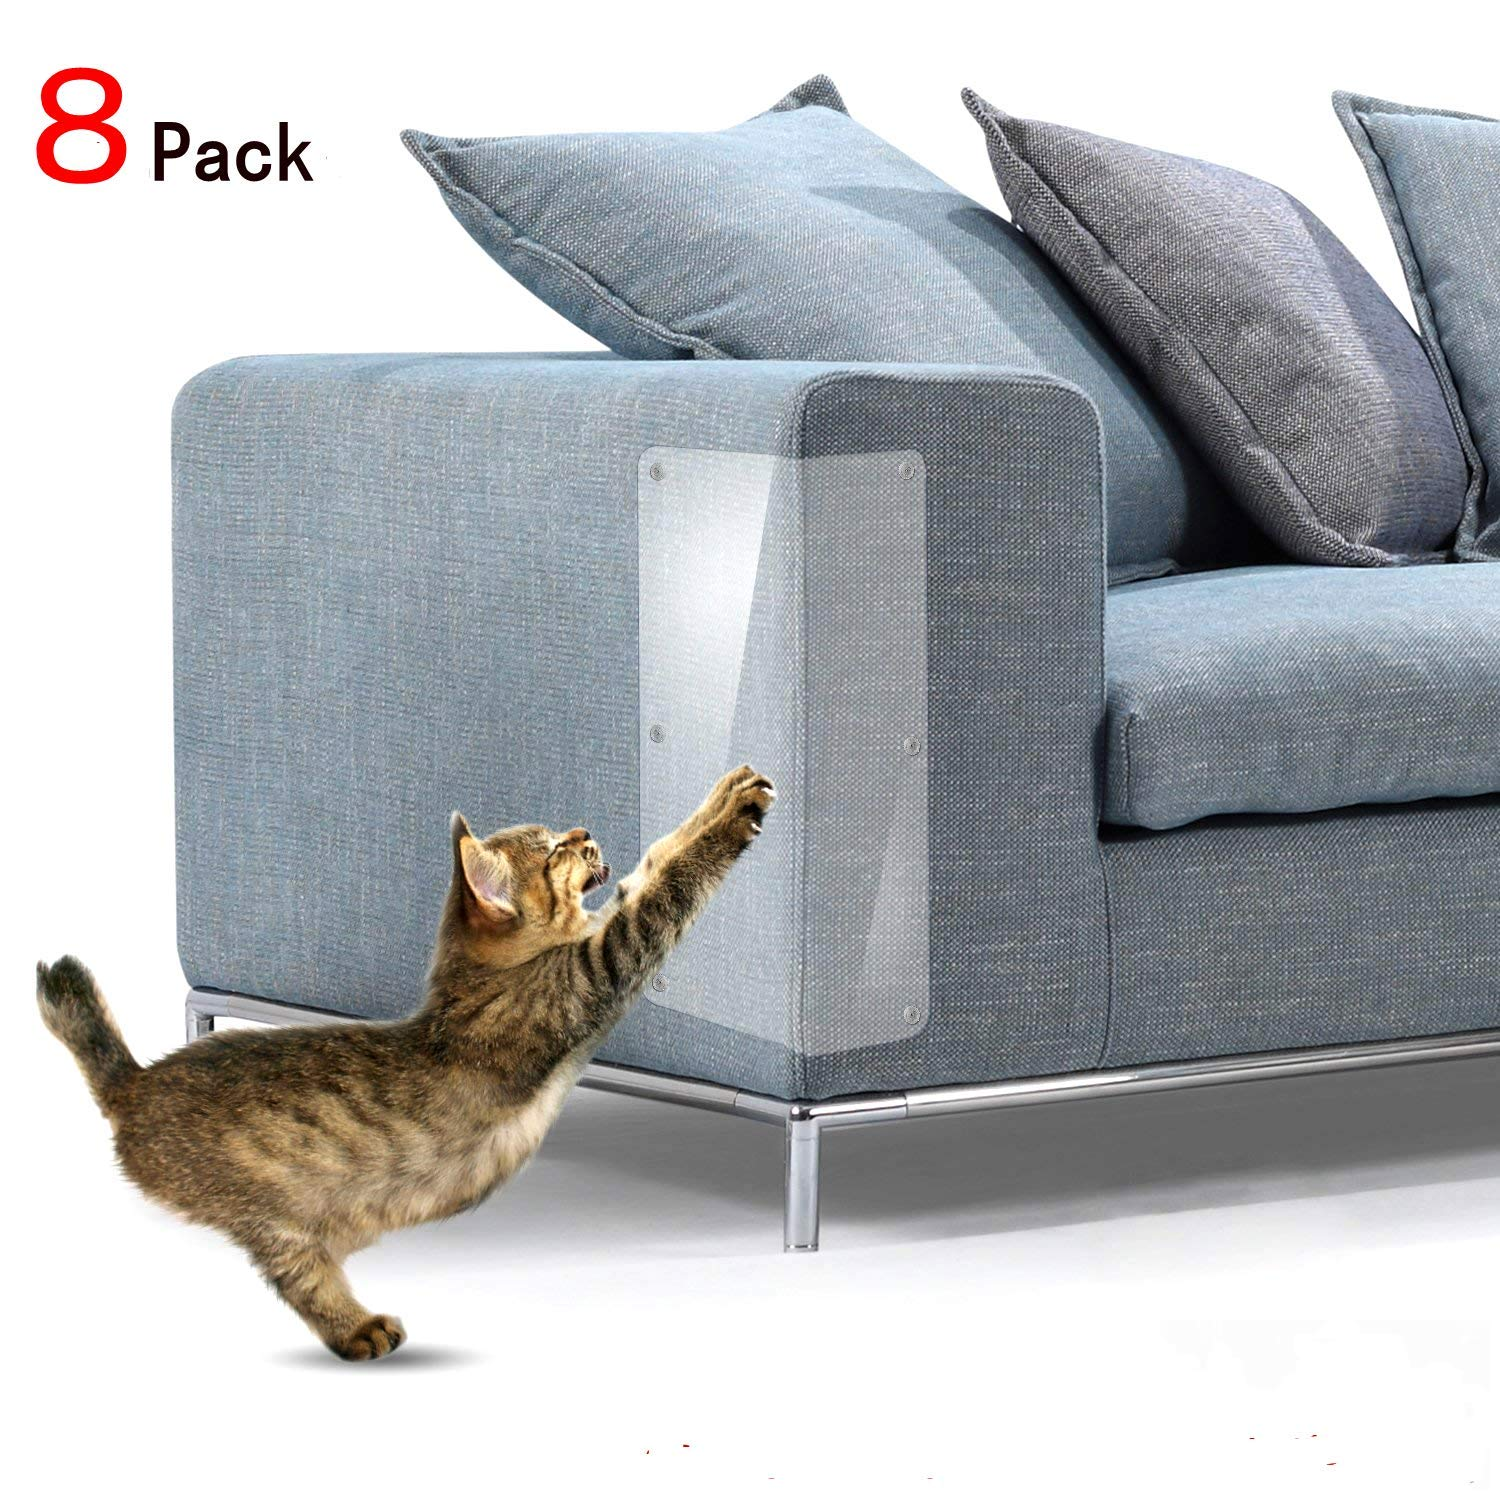 8 Pcs Cat Furniture Protectors,4 Pack X-Large (20''L x 12''W) + 4 Pack Large (20''L x 8''W) Cat Scratching Pad, Pet Scratch Protector for Sofa,Upholstery, Wall, Mattress